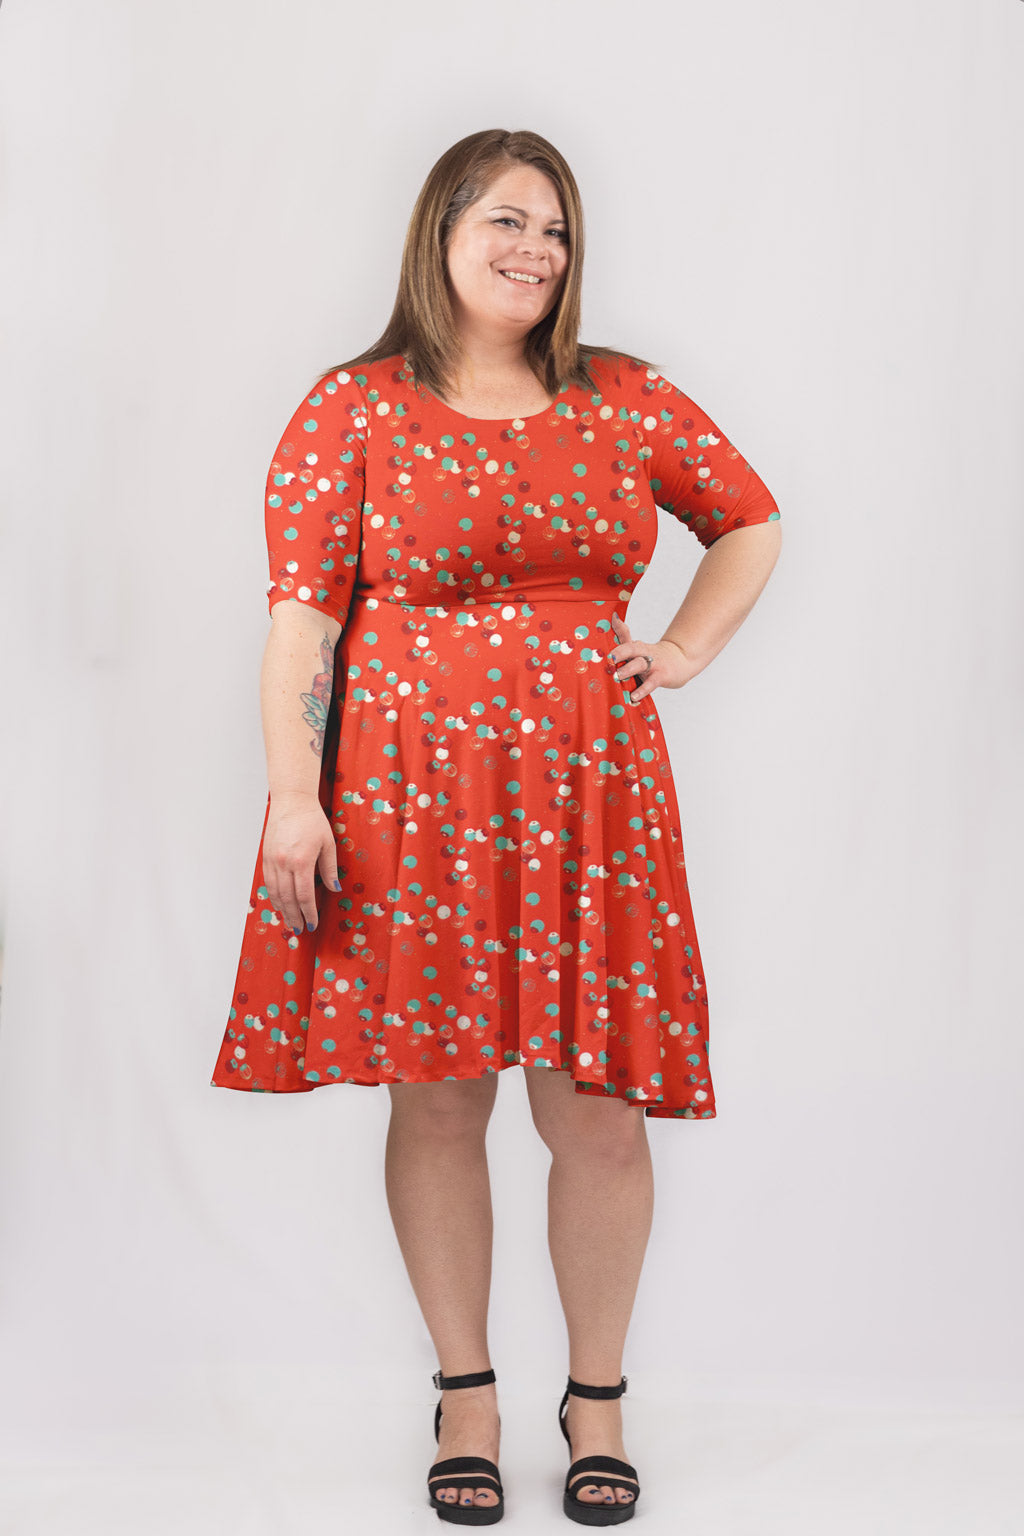 Tiny Berries Dress in Ruby